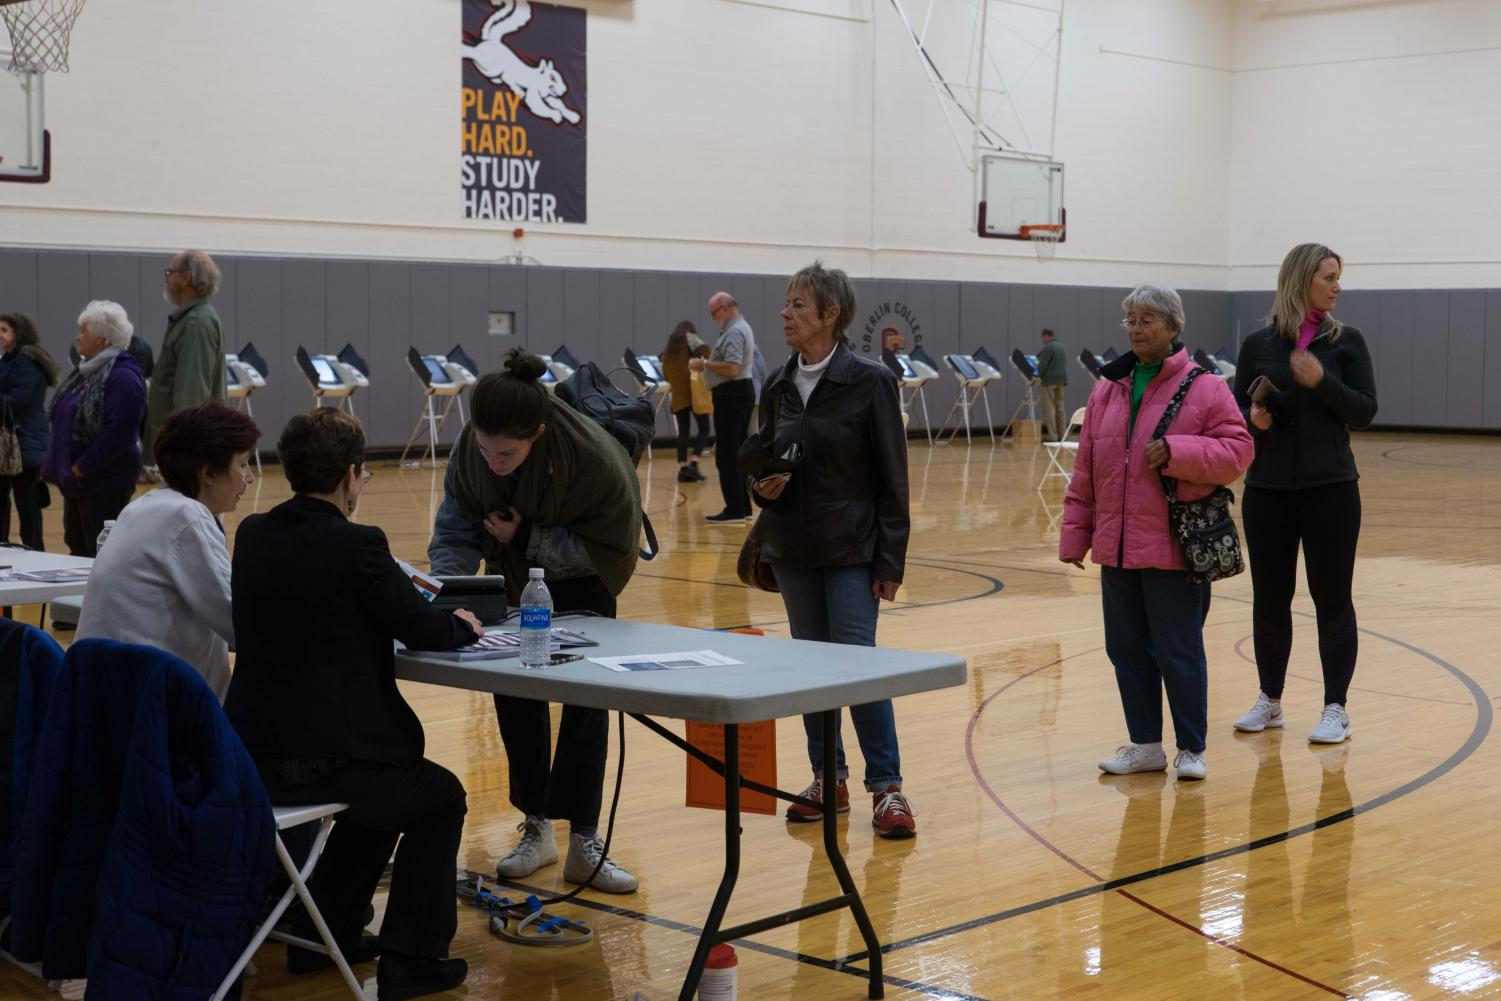 Community members vote at Philips gym in the November 2017 local election.